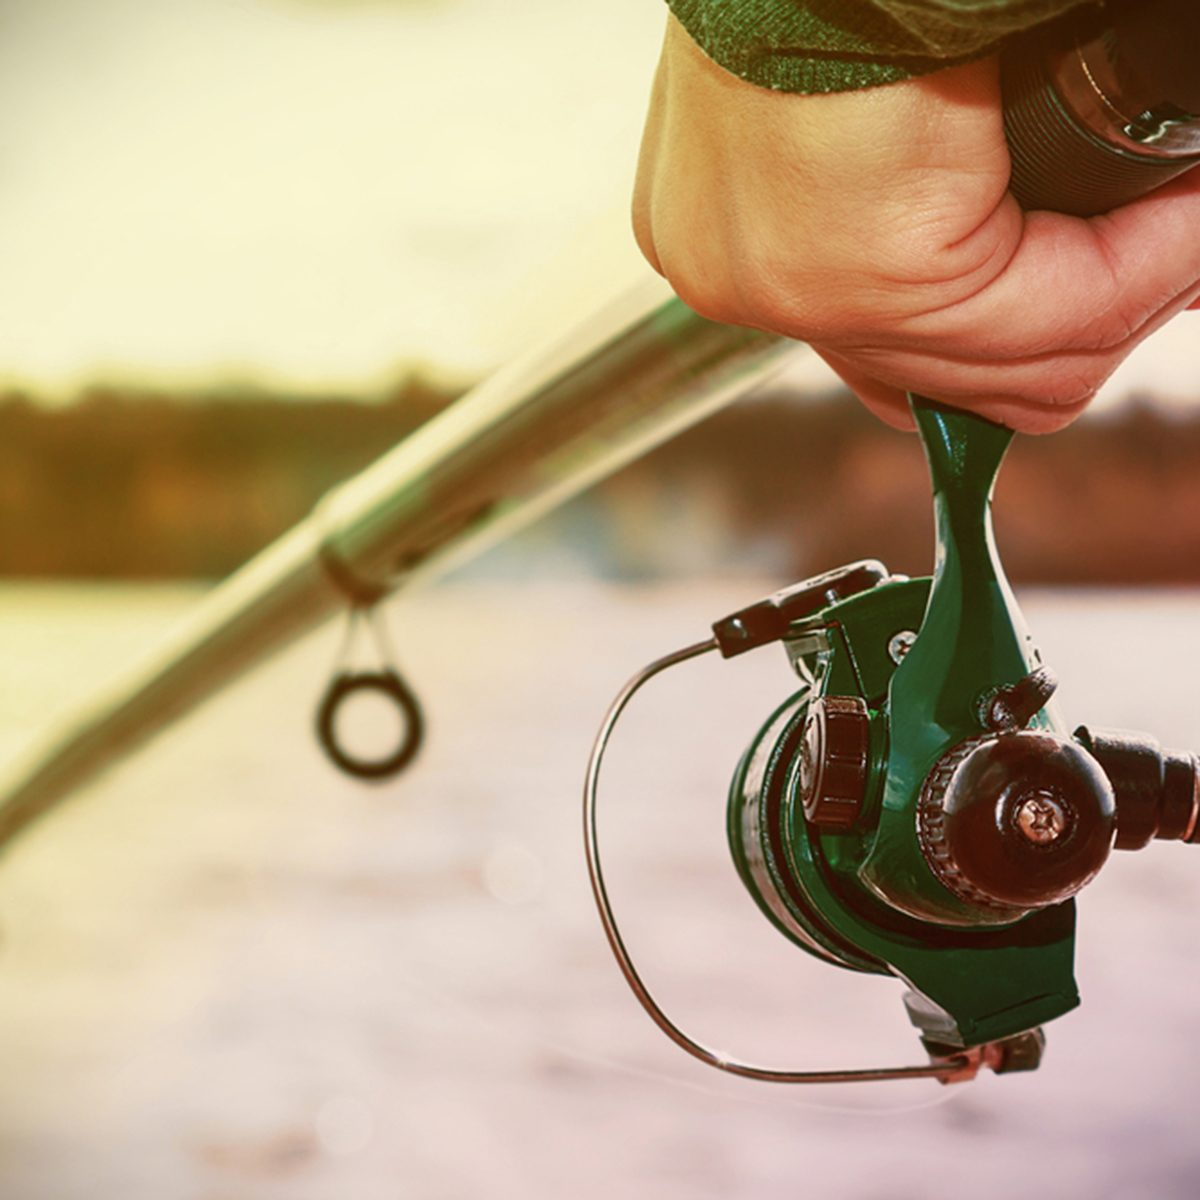 hand holding a fishing rod with reel.